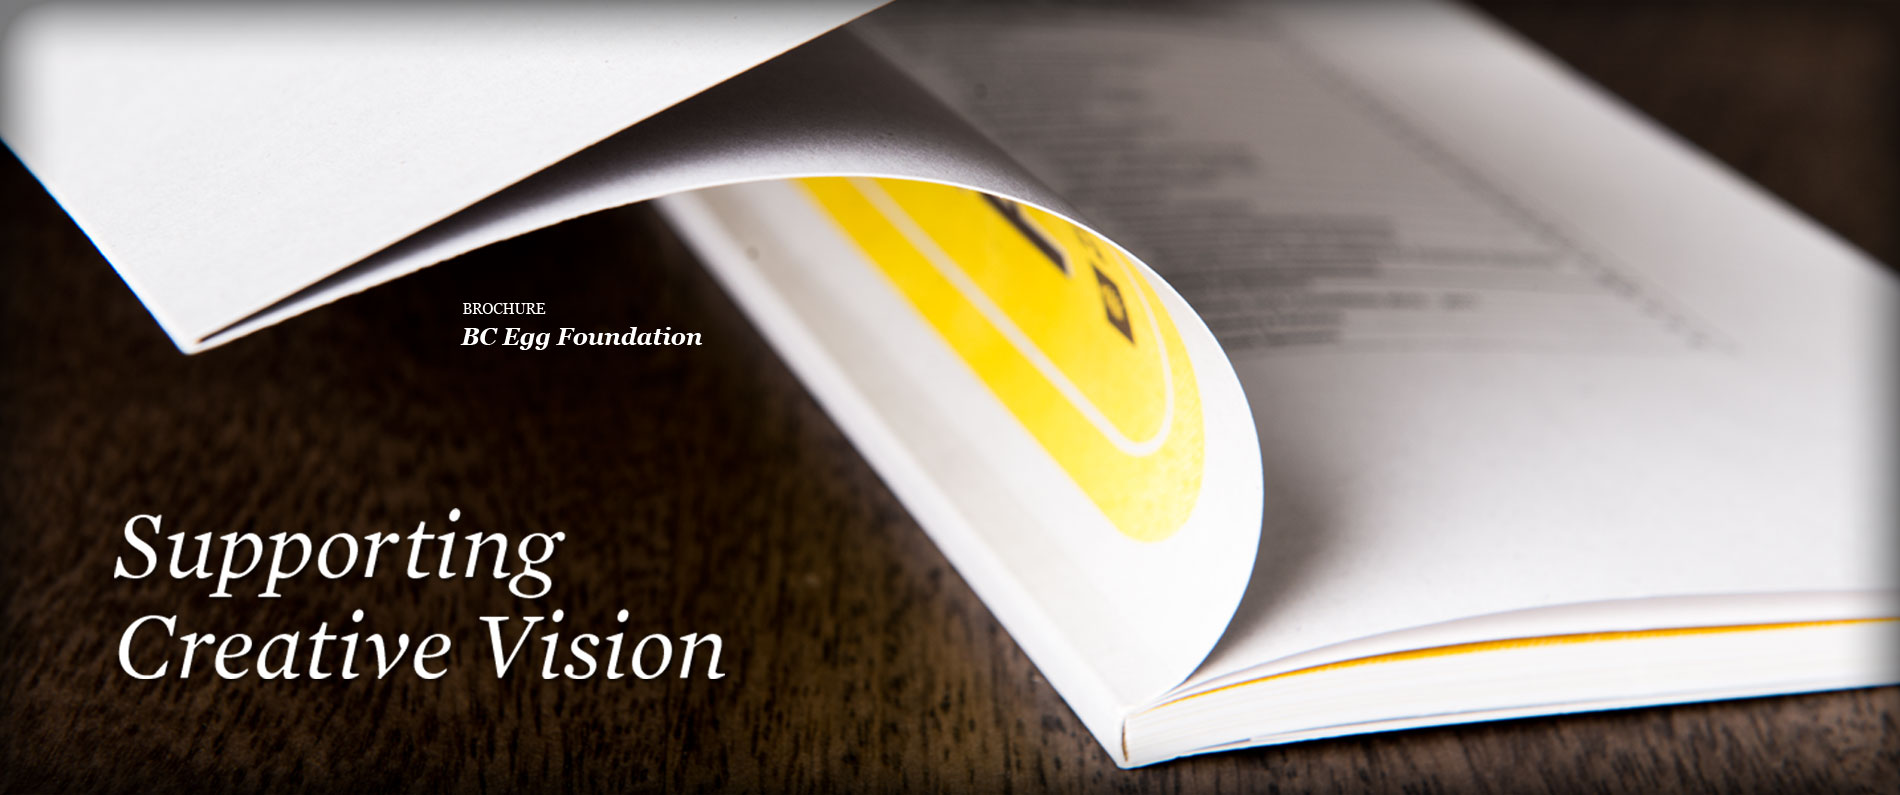 Printed BC Egg Foundation brochure